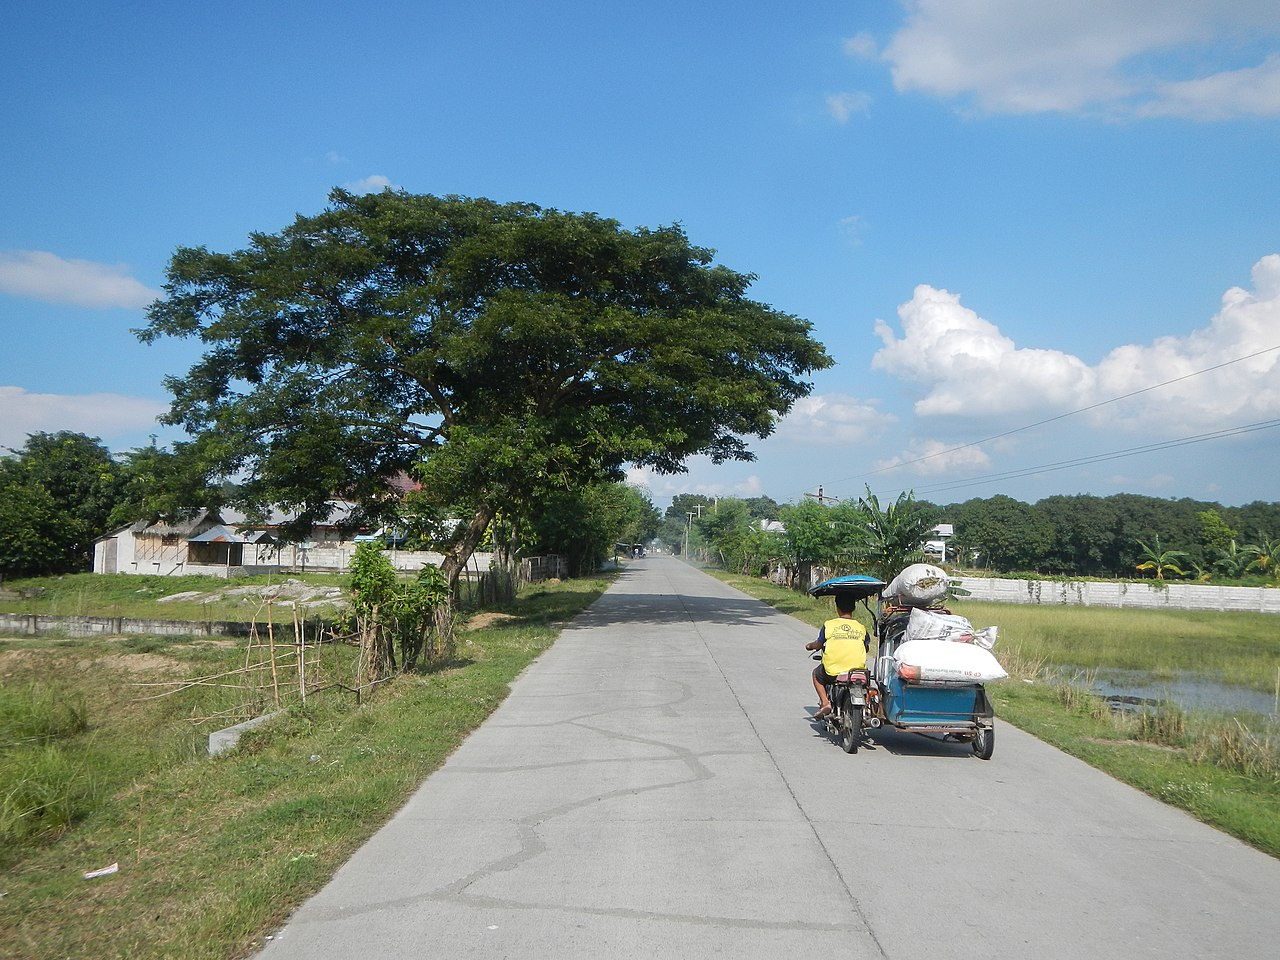 Tarlac Tourism: Best of Tarlac